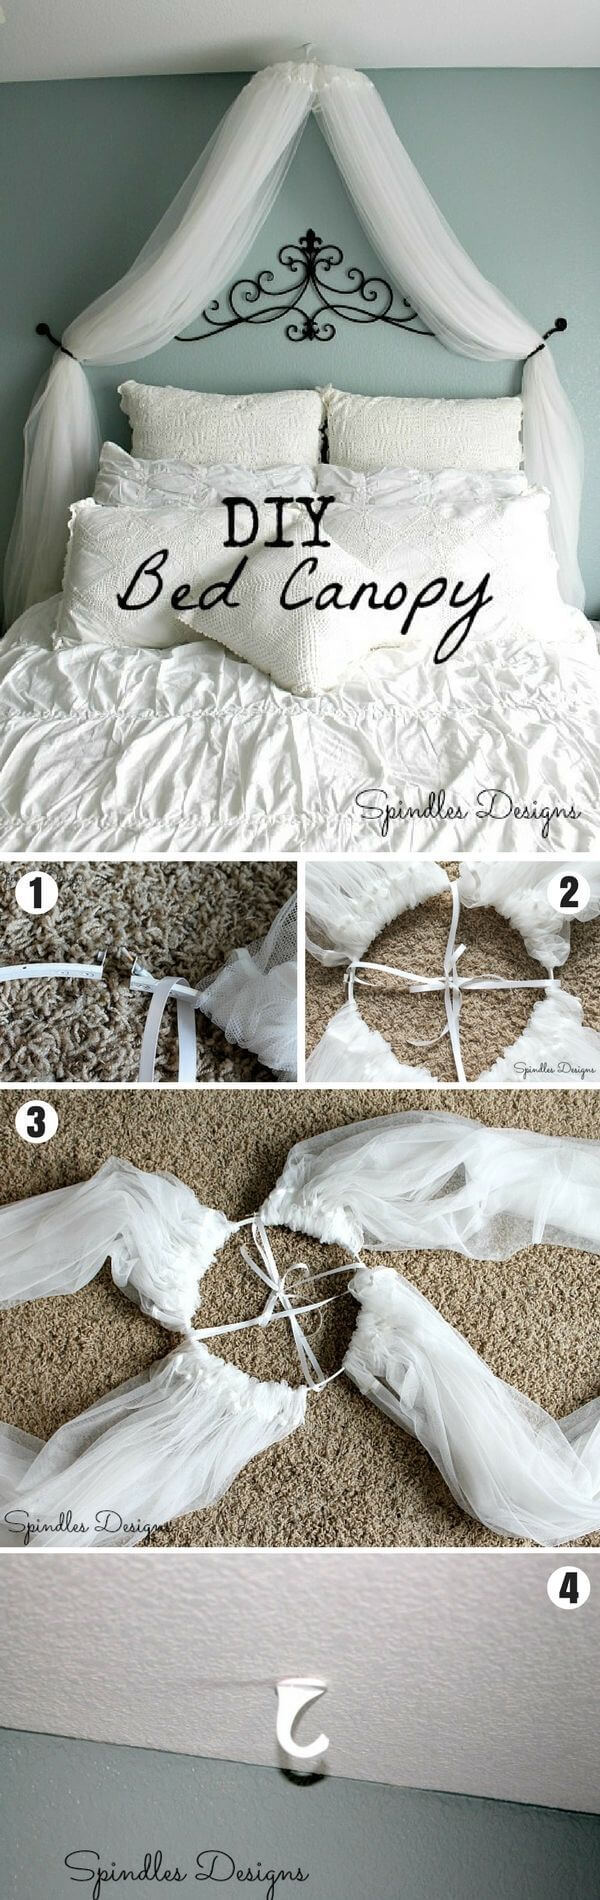 Inexpensive and Dreamy DIY Bed Canopy